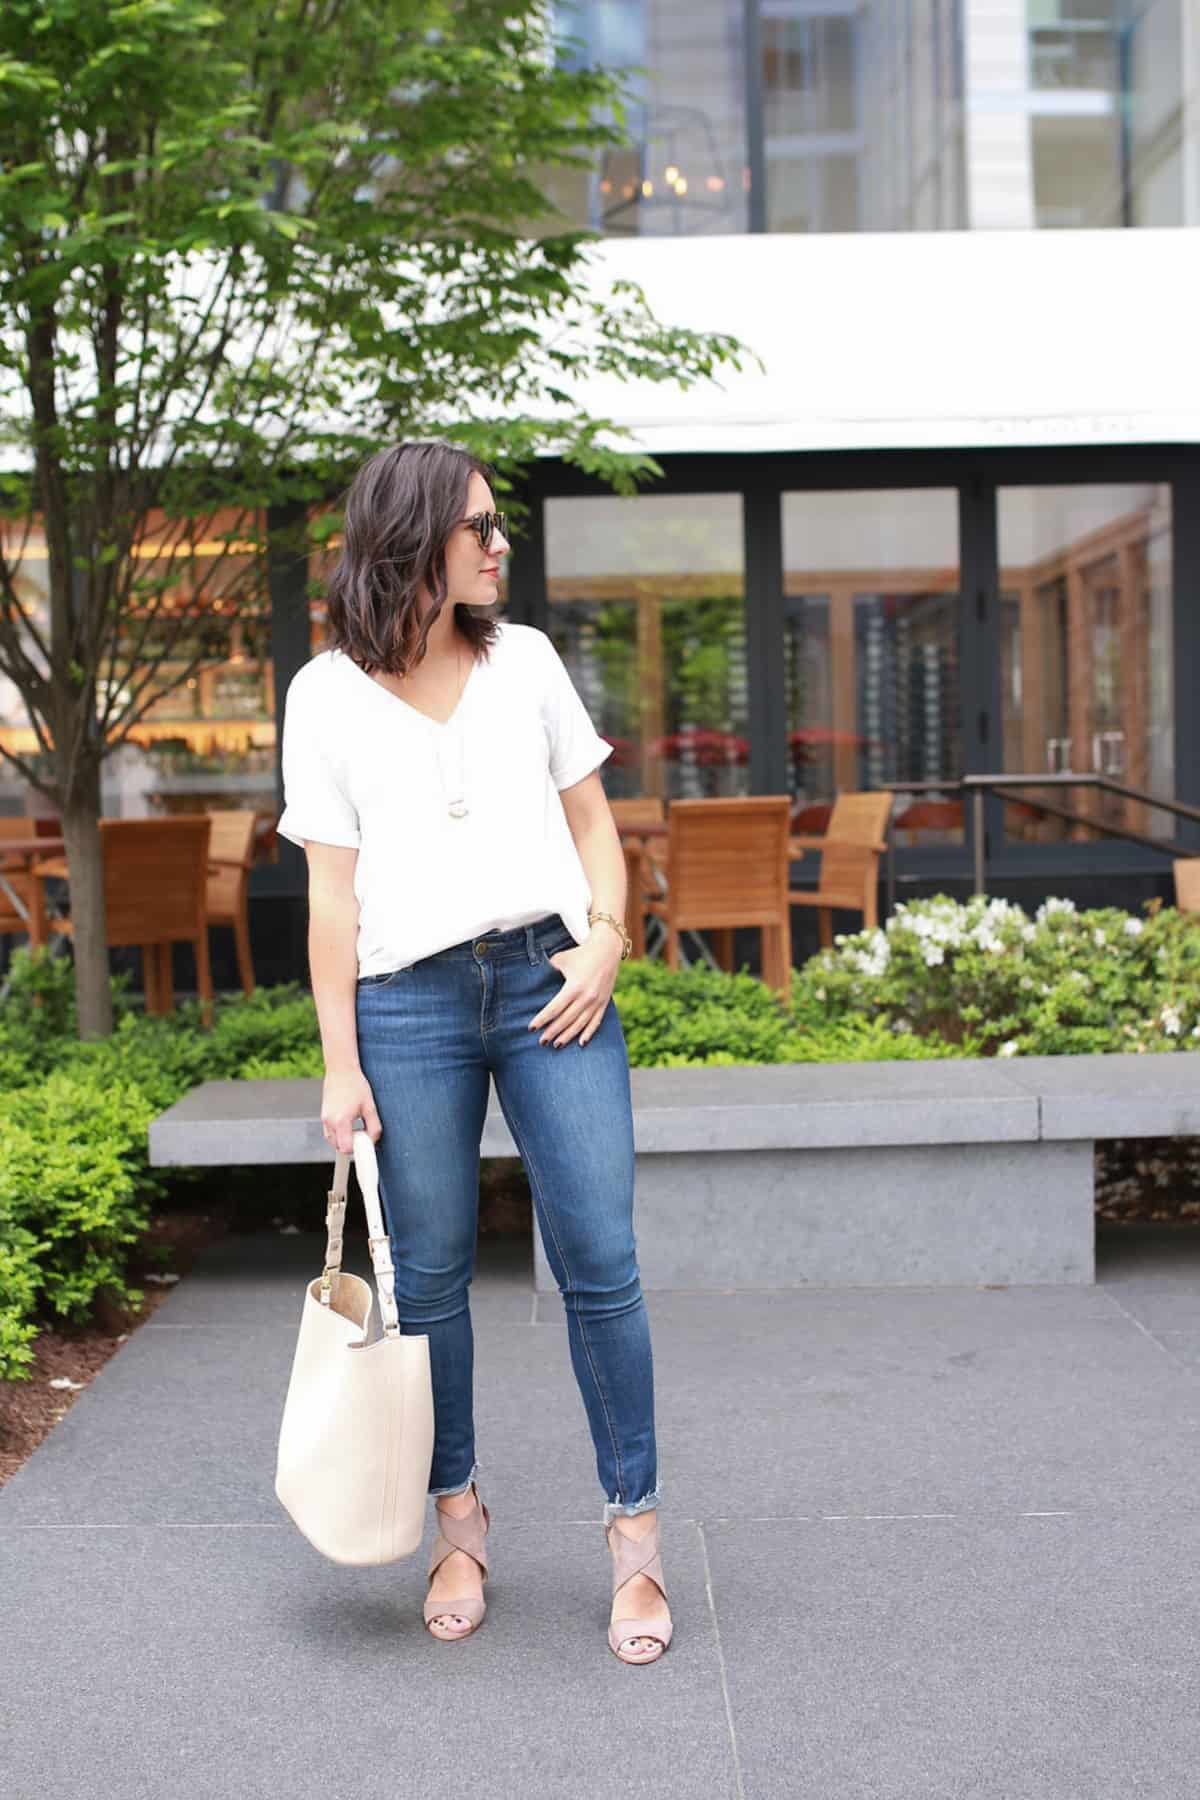 Cooper and Ella Blouse - Travel outfit ideas - Fig and Olive Brunch - My Style Vita @mystylevita